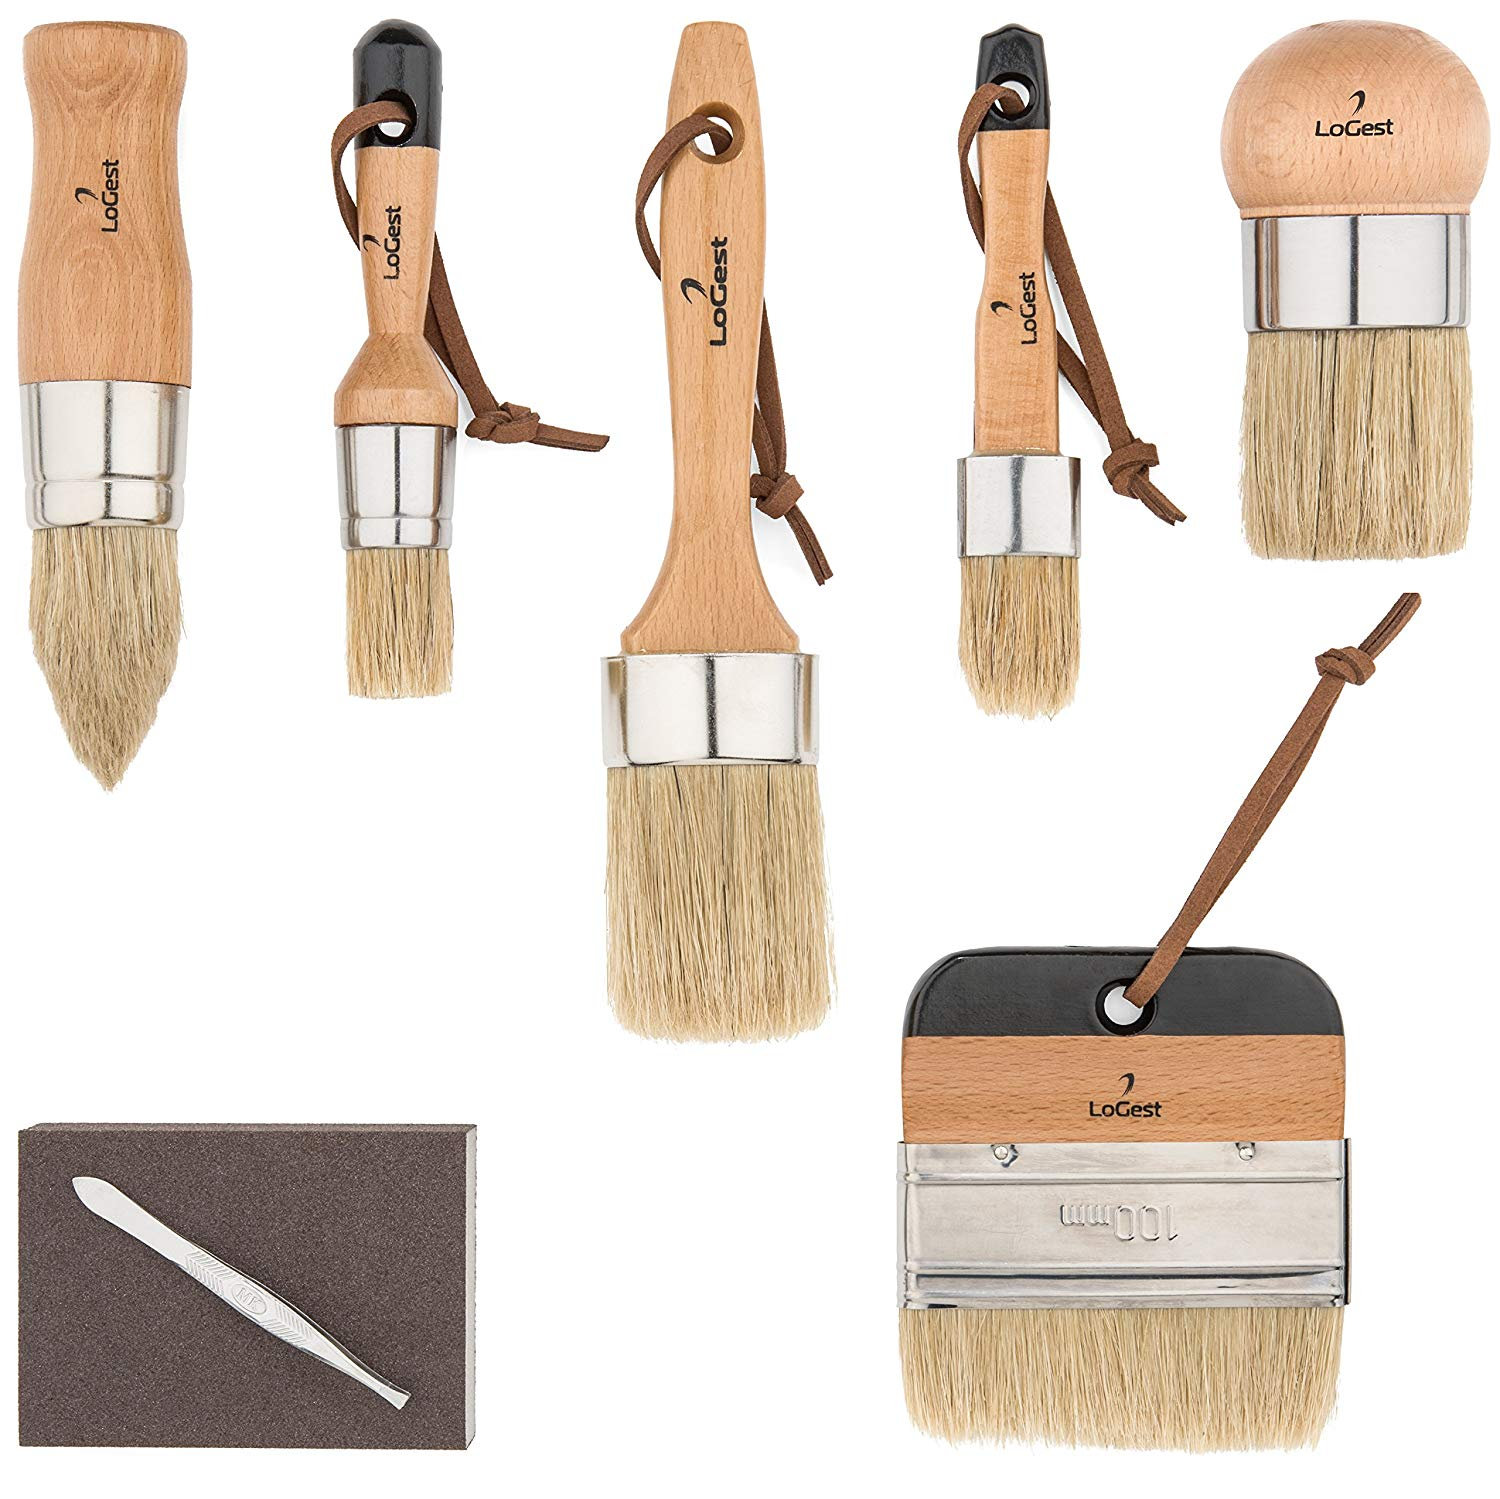 Pro 6 Chalk Paint Brush Set for Artist - Chalk,Waxing,Milk Paint Brush Set - Premium Thick Natural Boar Bristles Hair - Annie Sloan Quality - Sanding Pad & Bristle Remover Included - by LoGest